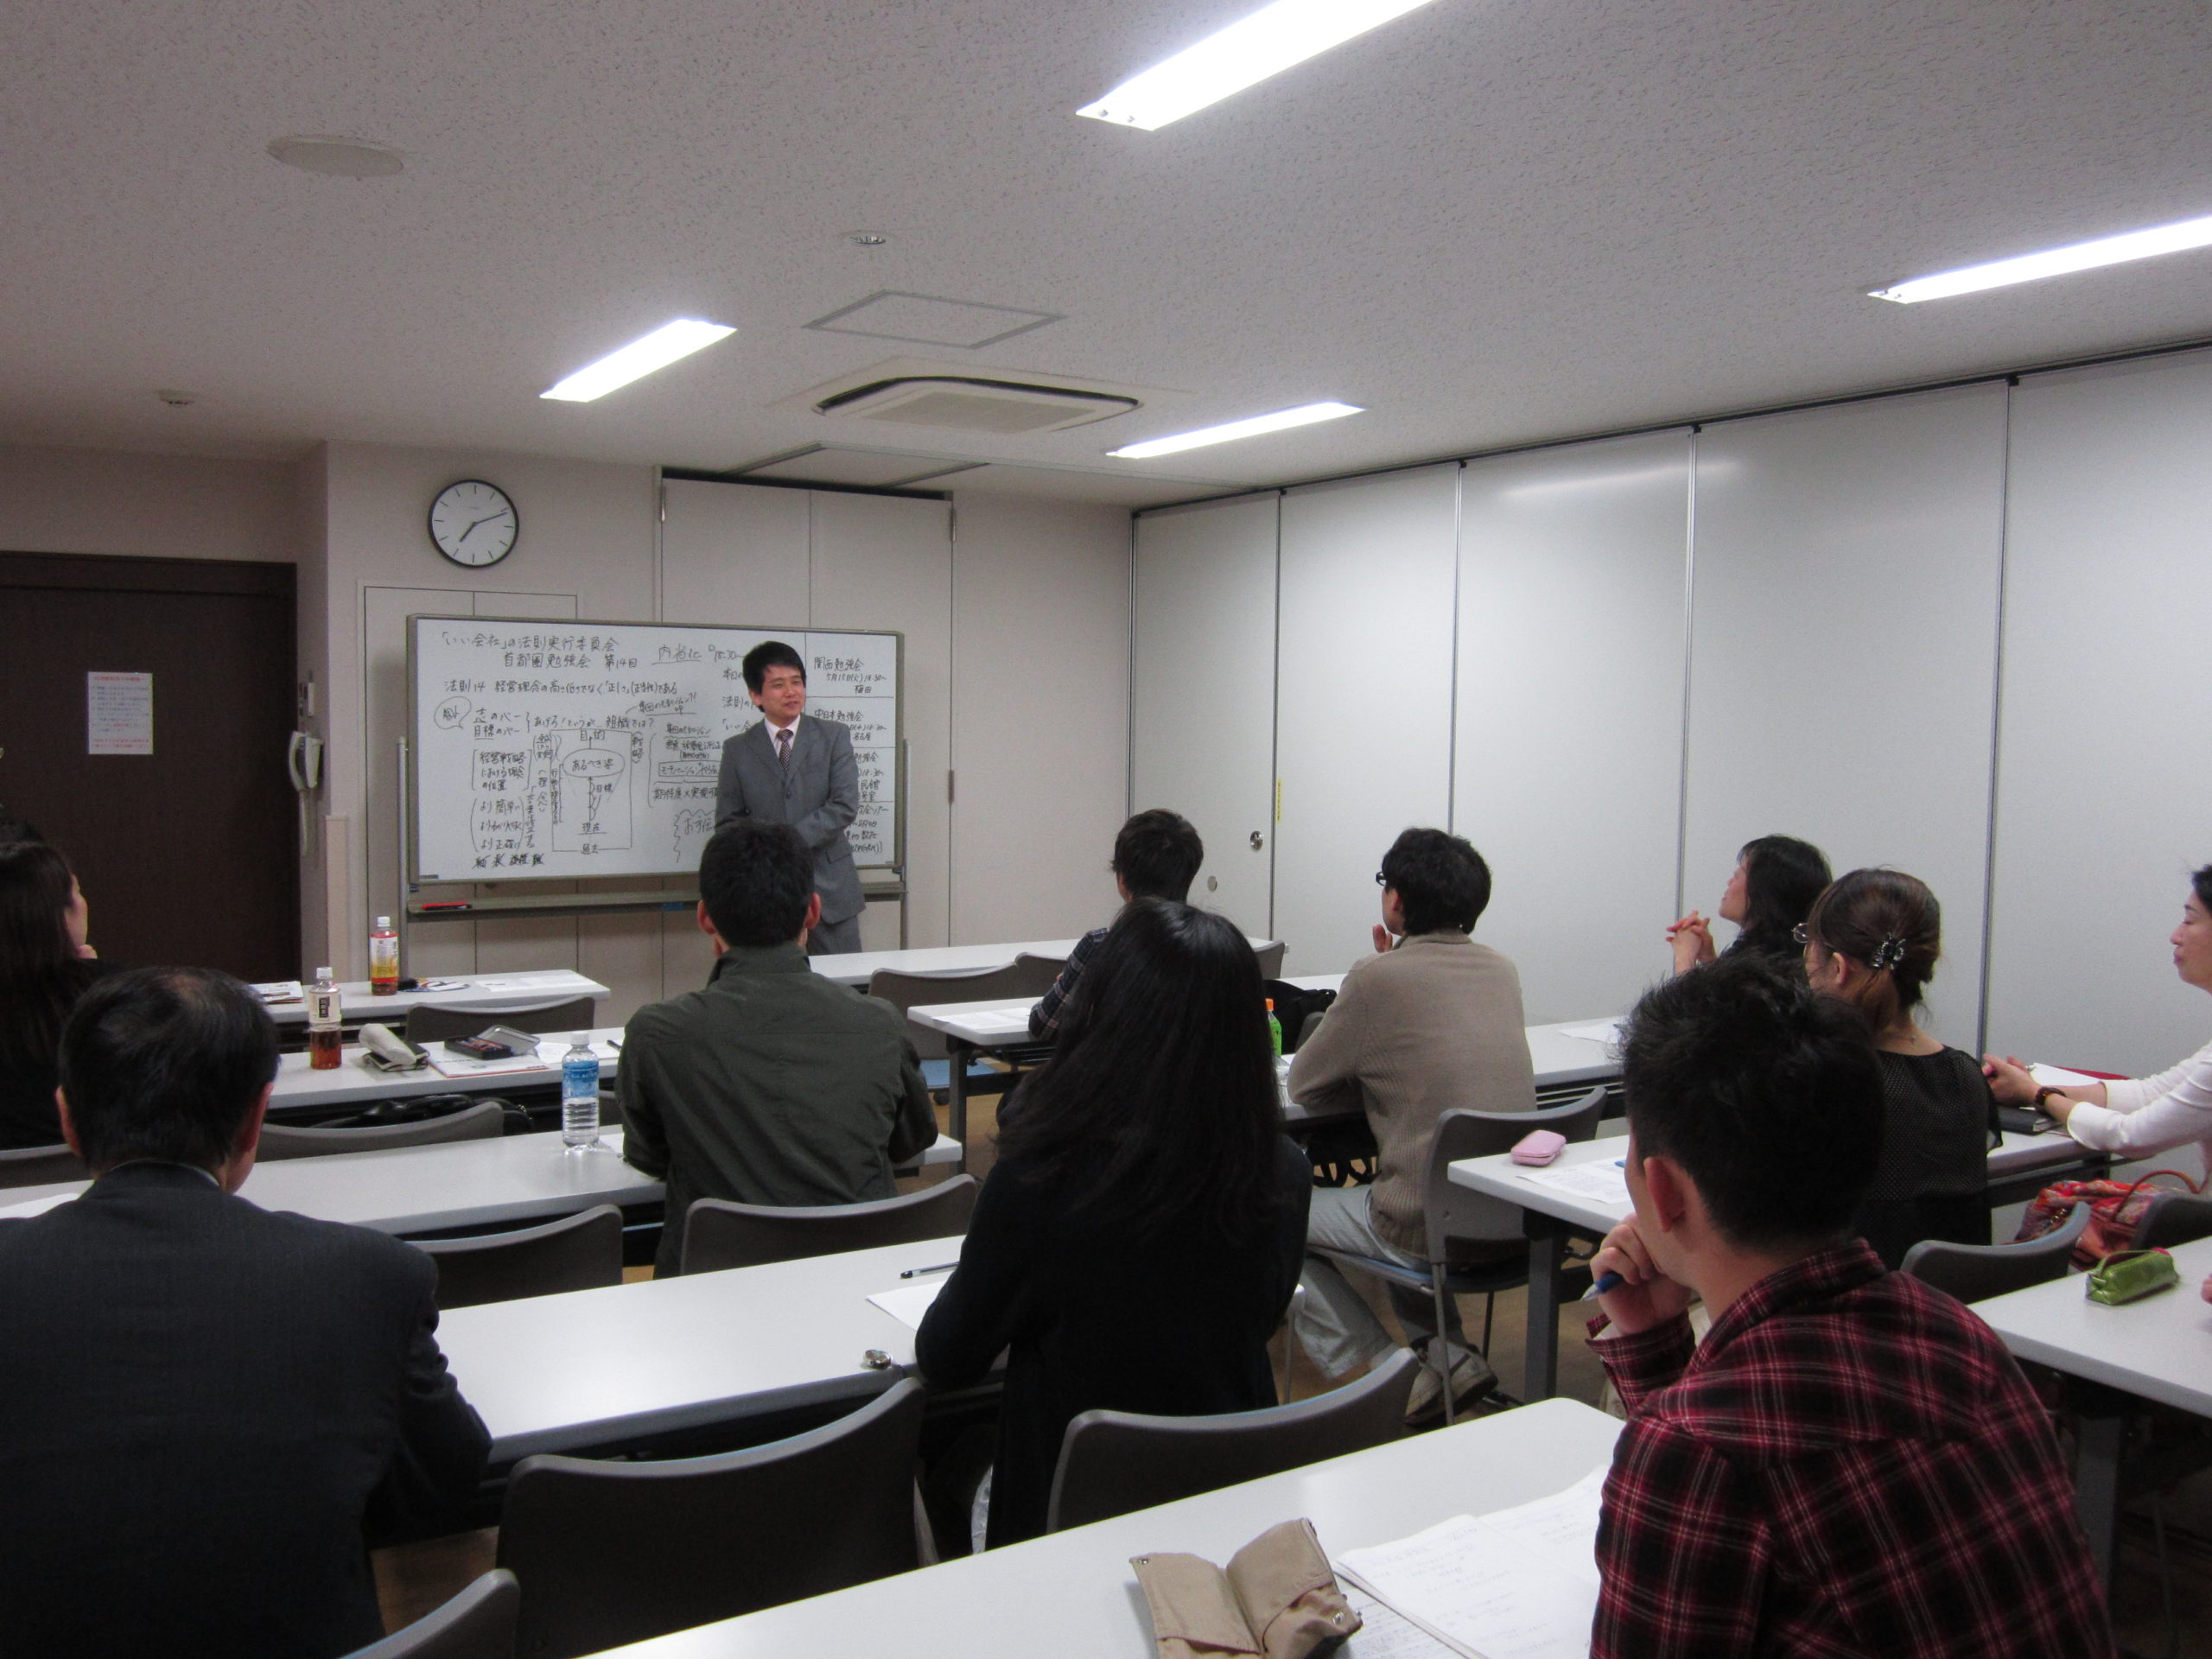 IMG 0270 1wre scaled - 12月5日 第82回 いい会社の法則実行委員会 首都圏勉強会